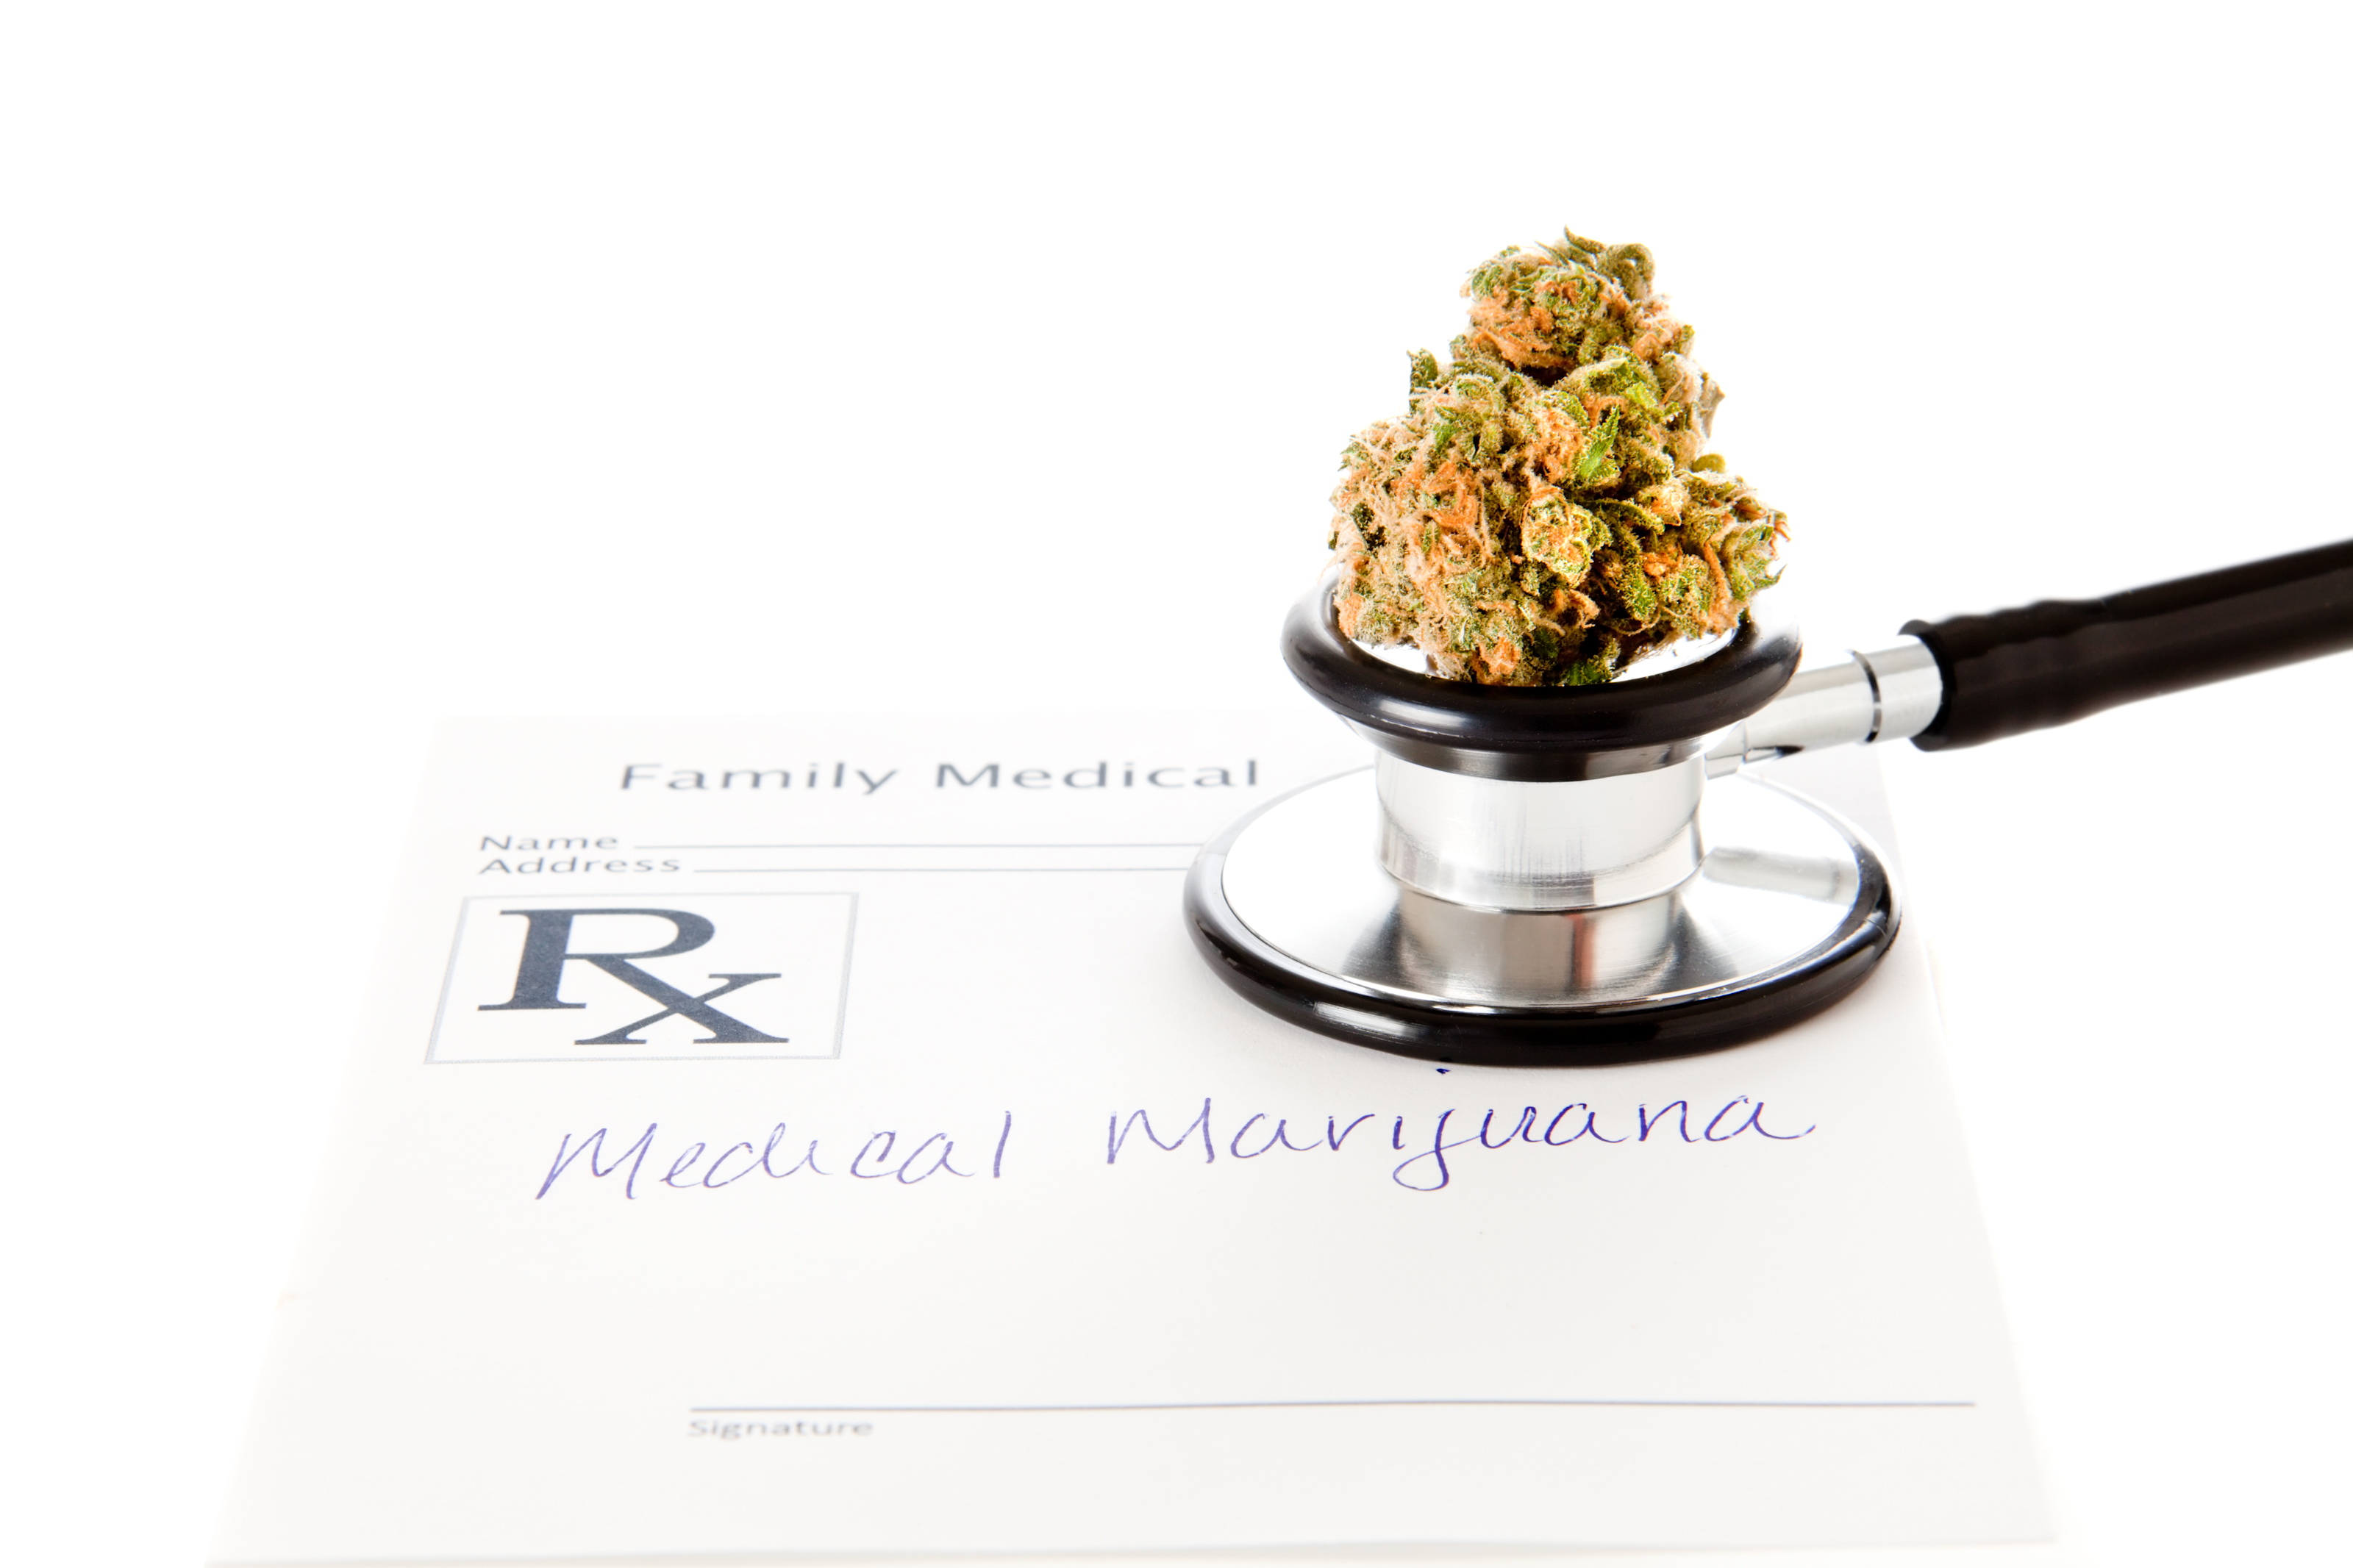 Florida: First Southern State to Legalize Medical Marijuana